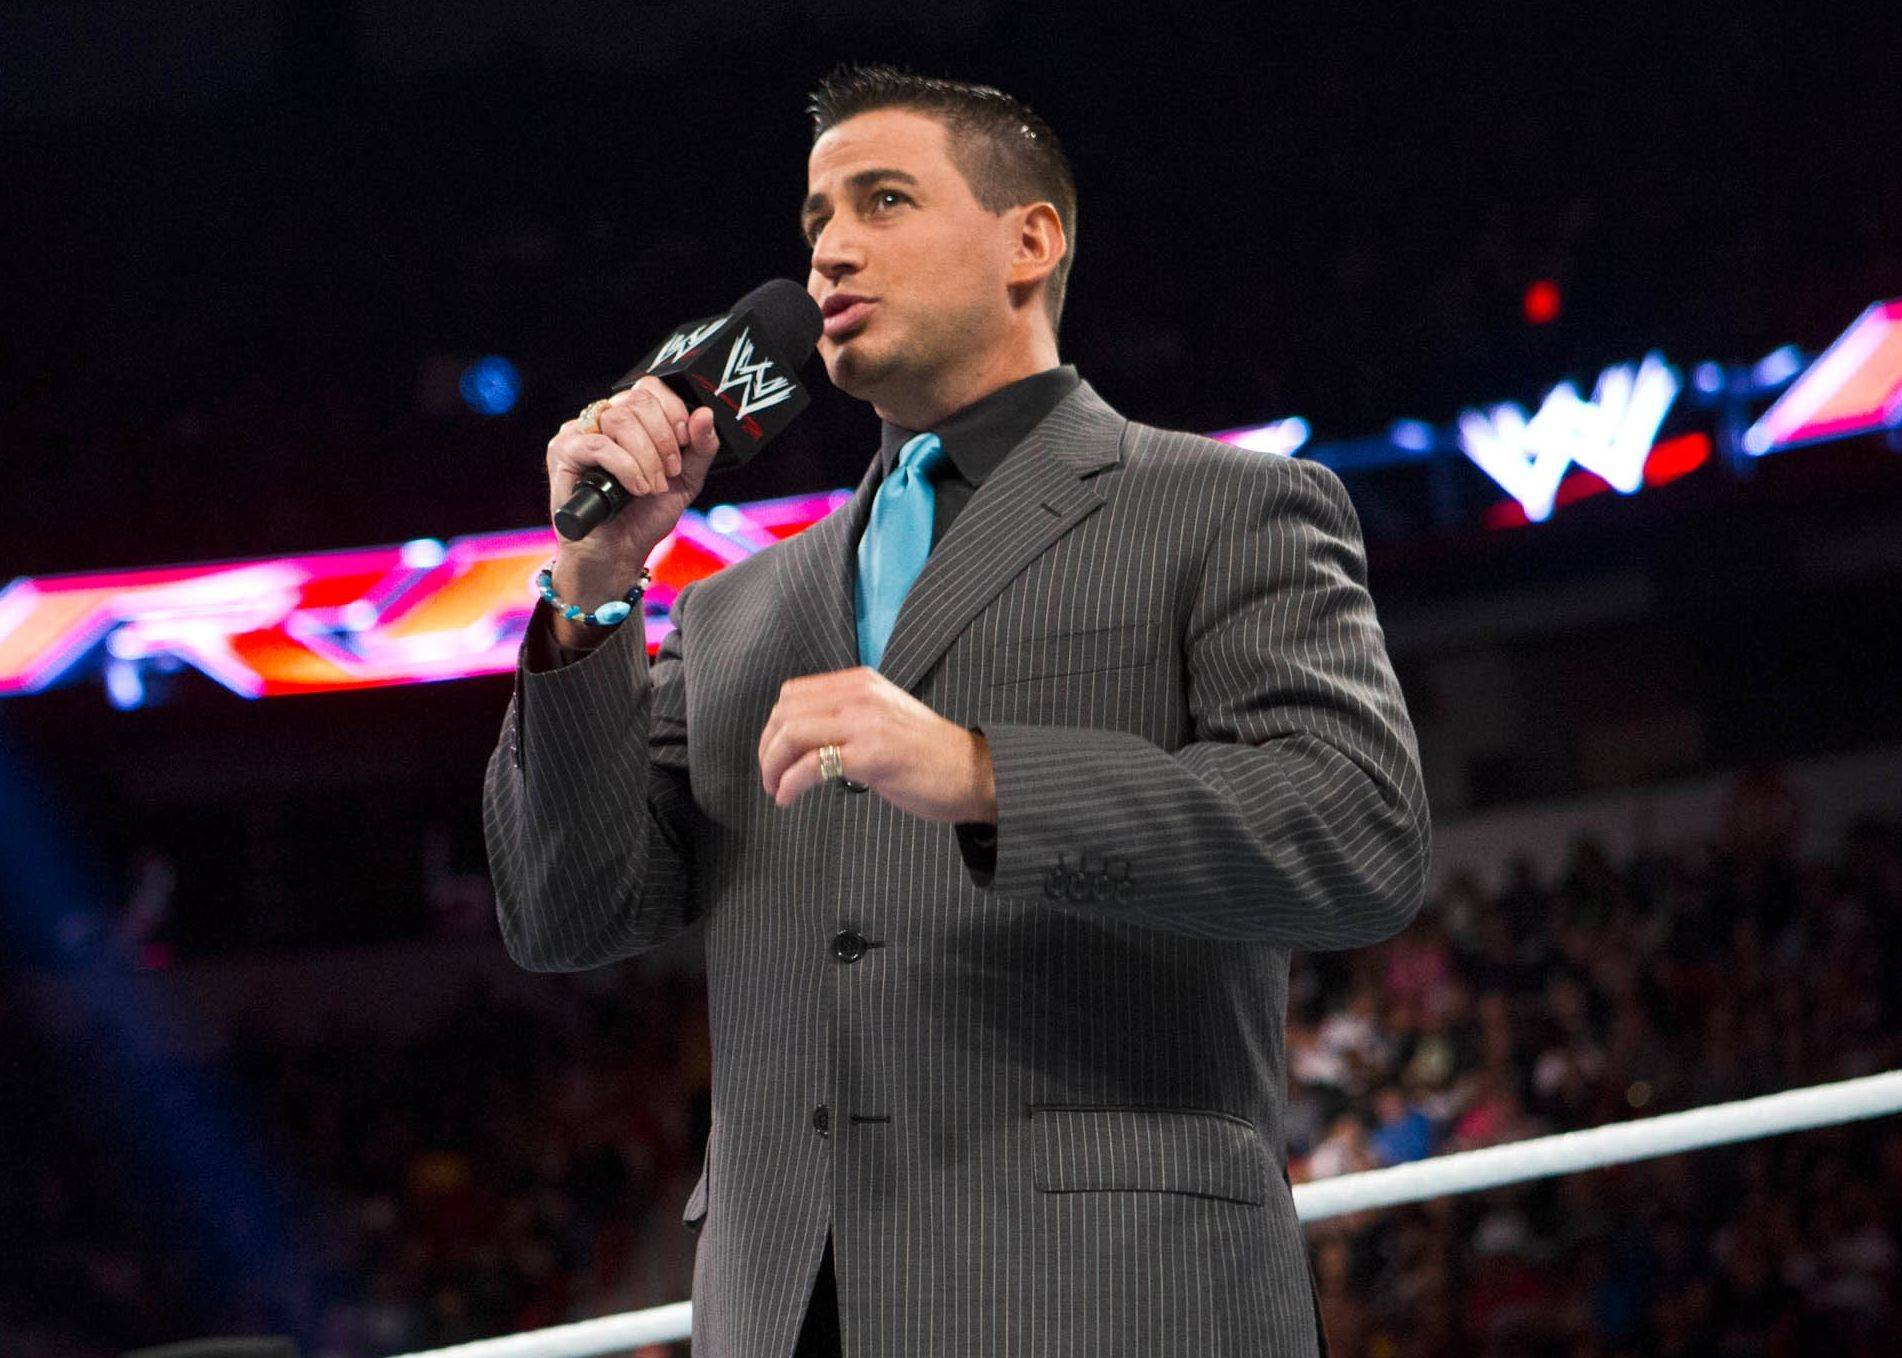 WWE announcer Justin Roberts said he's wanted this dream job since he was a kid growing up in Buffalo Grove.